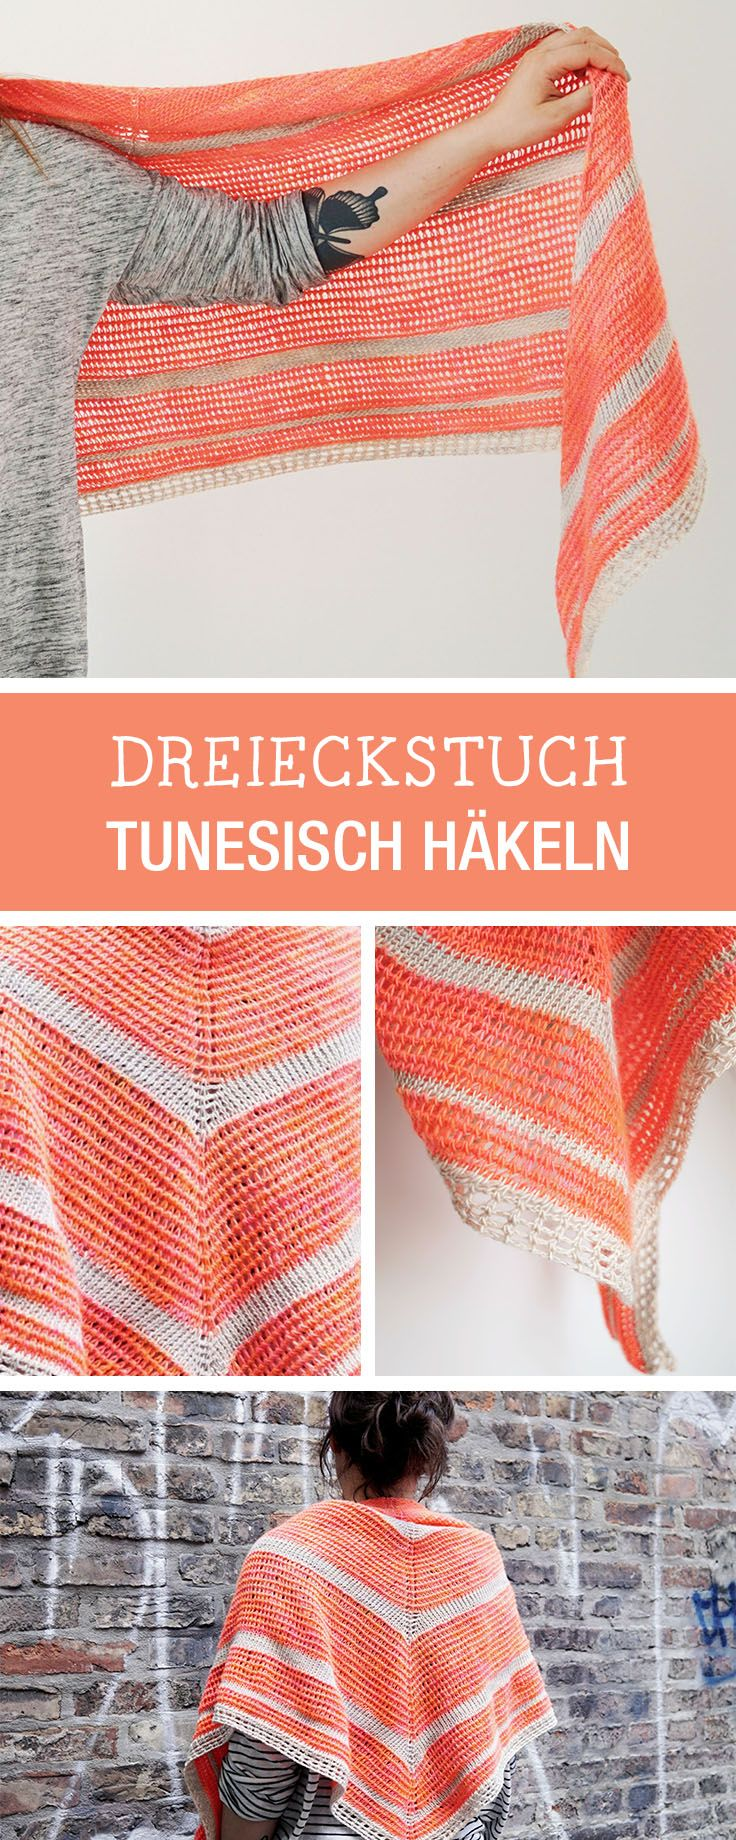 DIY-Anleitung: Dreieckstuch Tunesisch häkeln, Herbstaccessoires für Dein Outfut / DIY tutorial: crocheting a scarf the tunesian way, your fall accessory via DaWanda.com